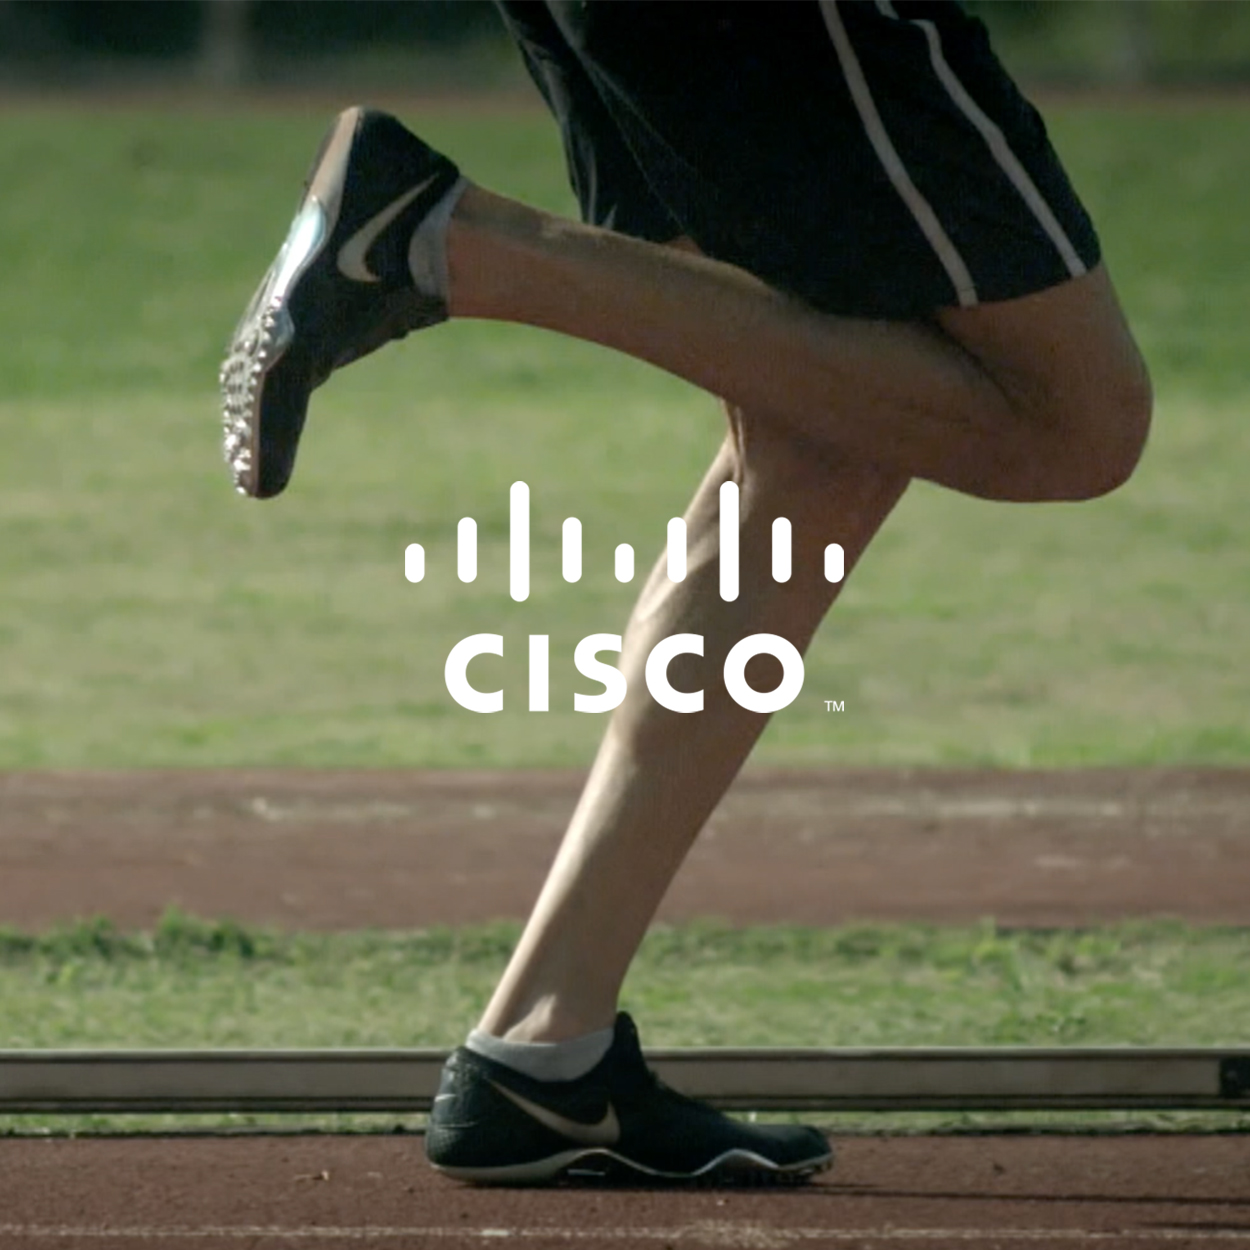 cisco_needs_retouching_home2.jpg